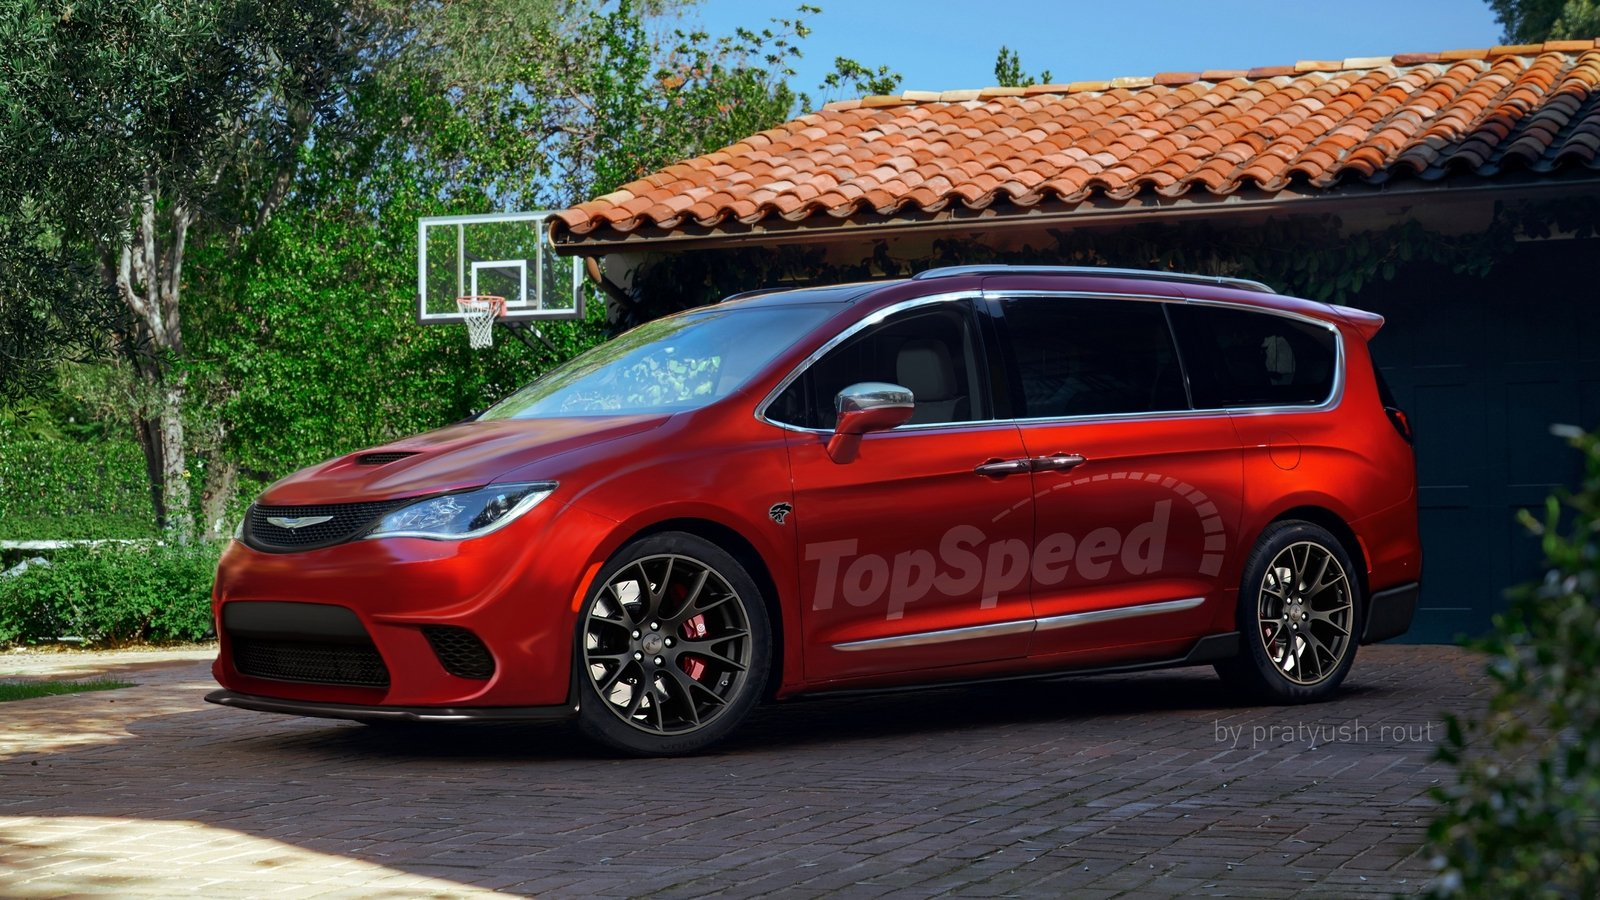 2017 Chrysler Pacifica Minivan Forums View Single Post